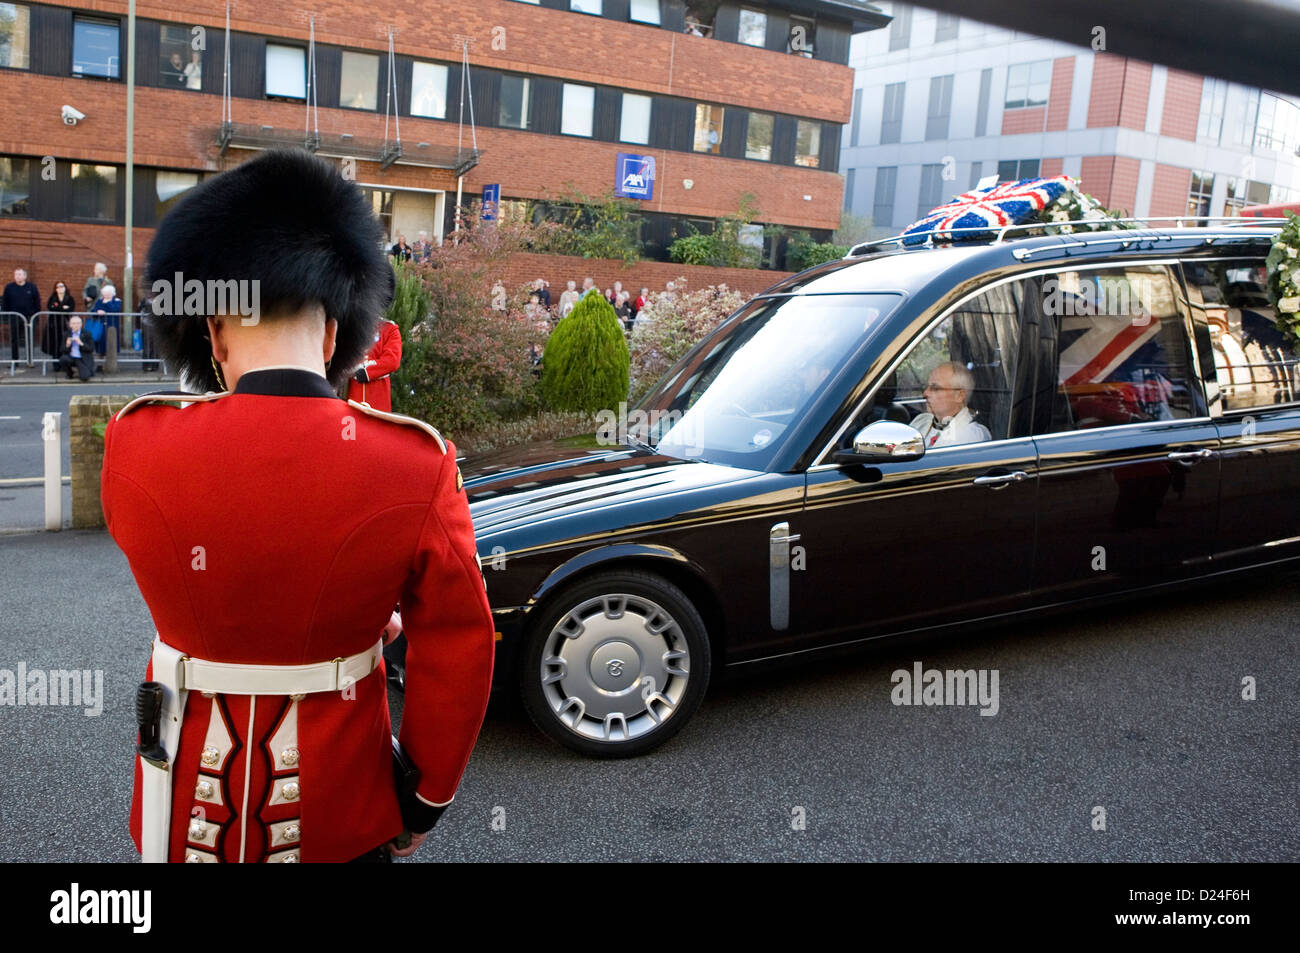 A British Guards soldier in formal dress at a military funeral in Croydon. - Stock Image